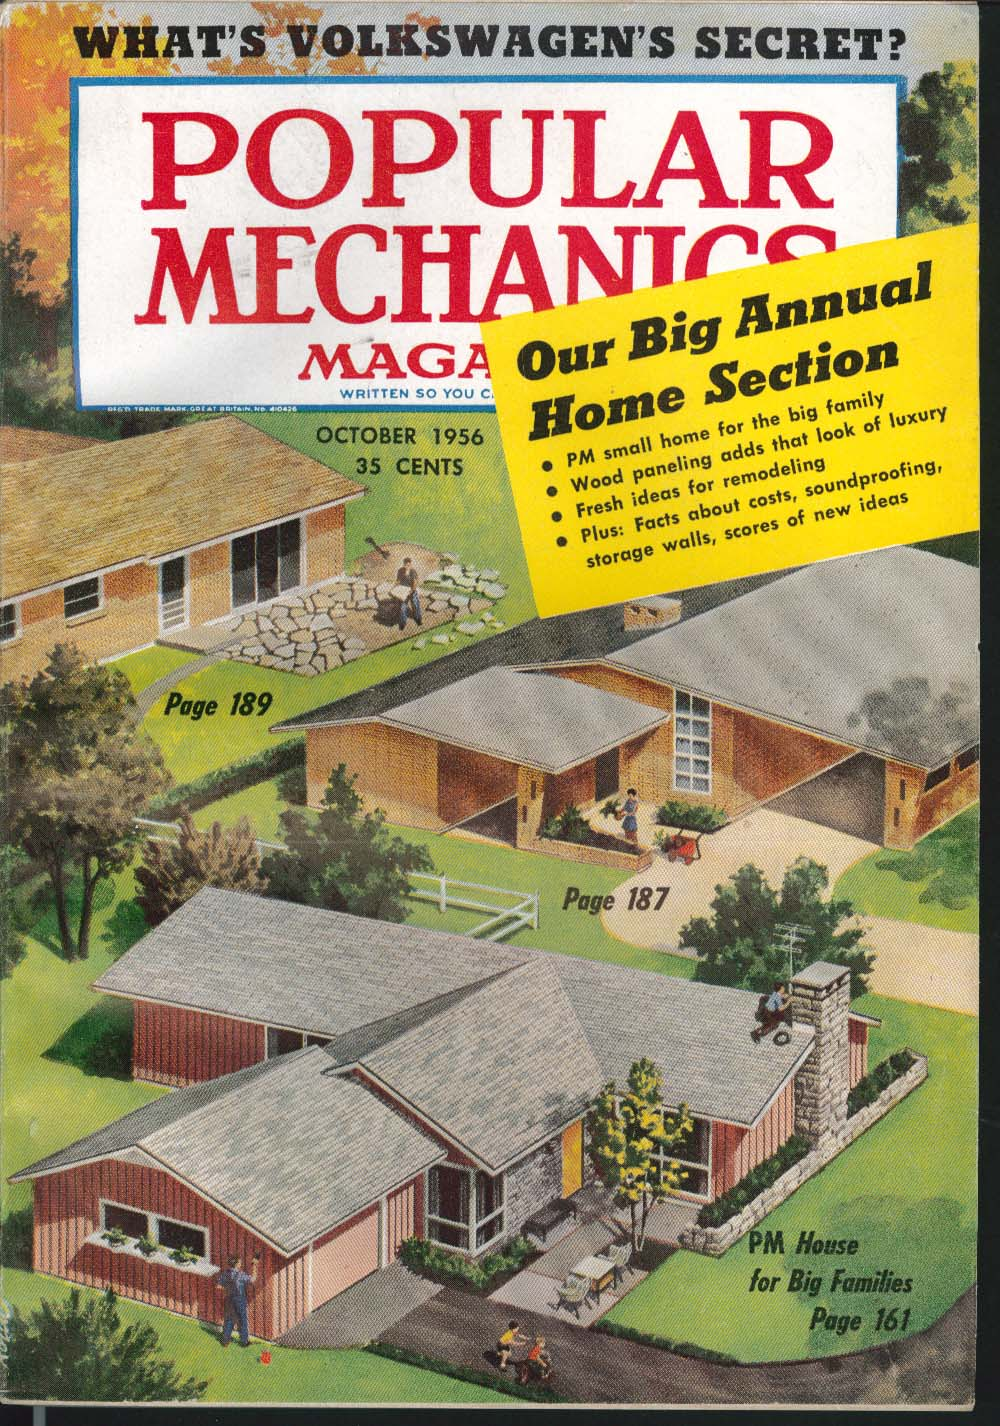 POPULAR MECHANICS Volkswagen owners report Housing Section: storage, etc 10 1956